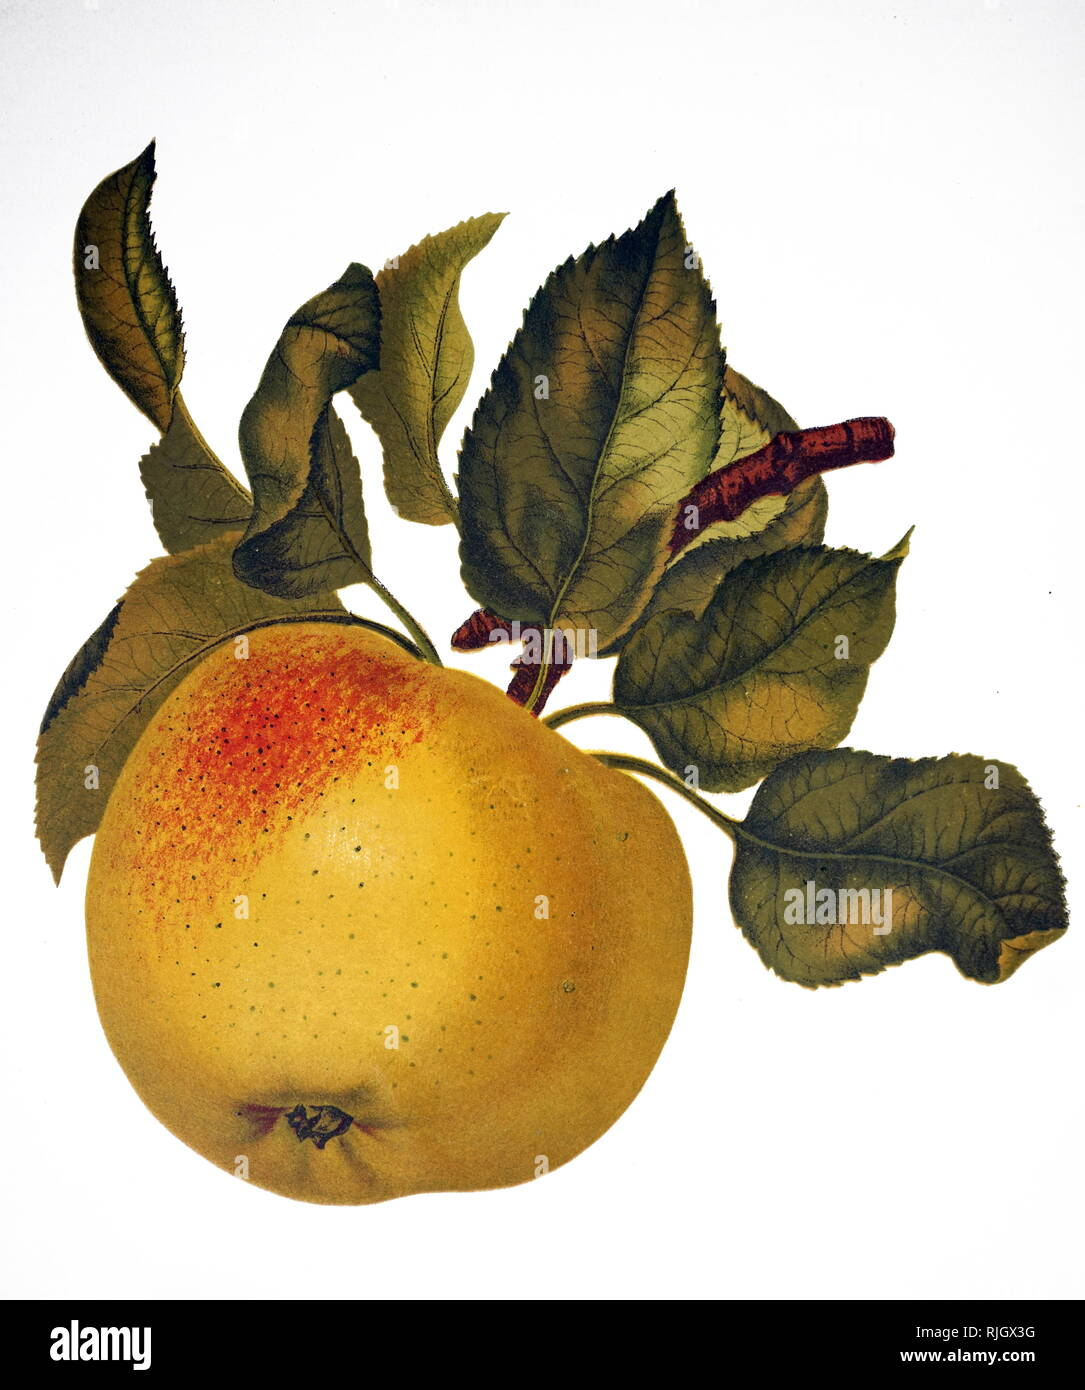 A painting depicting the fruit of an Indian bael, also known as a bael, Bengal quince, golden apple, Japanese bitter orange, stone apple or wood apple, a species of tree native to the Indian subcontinent and Southeast Asia. Dated 19th century - Stock Image